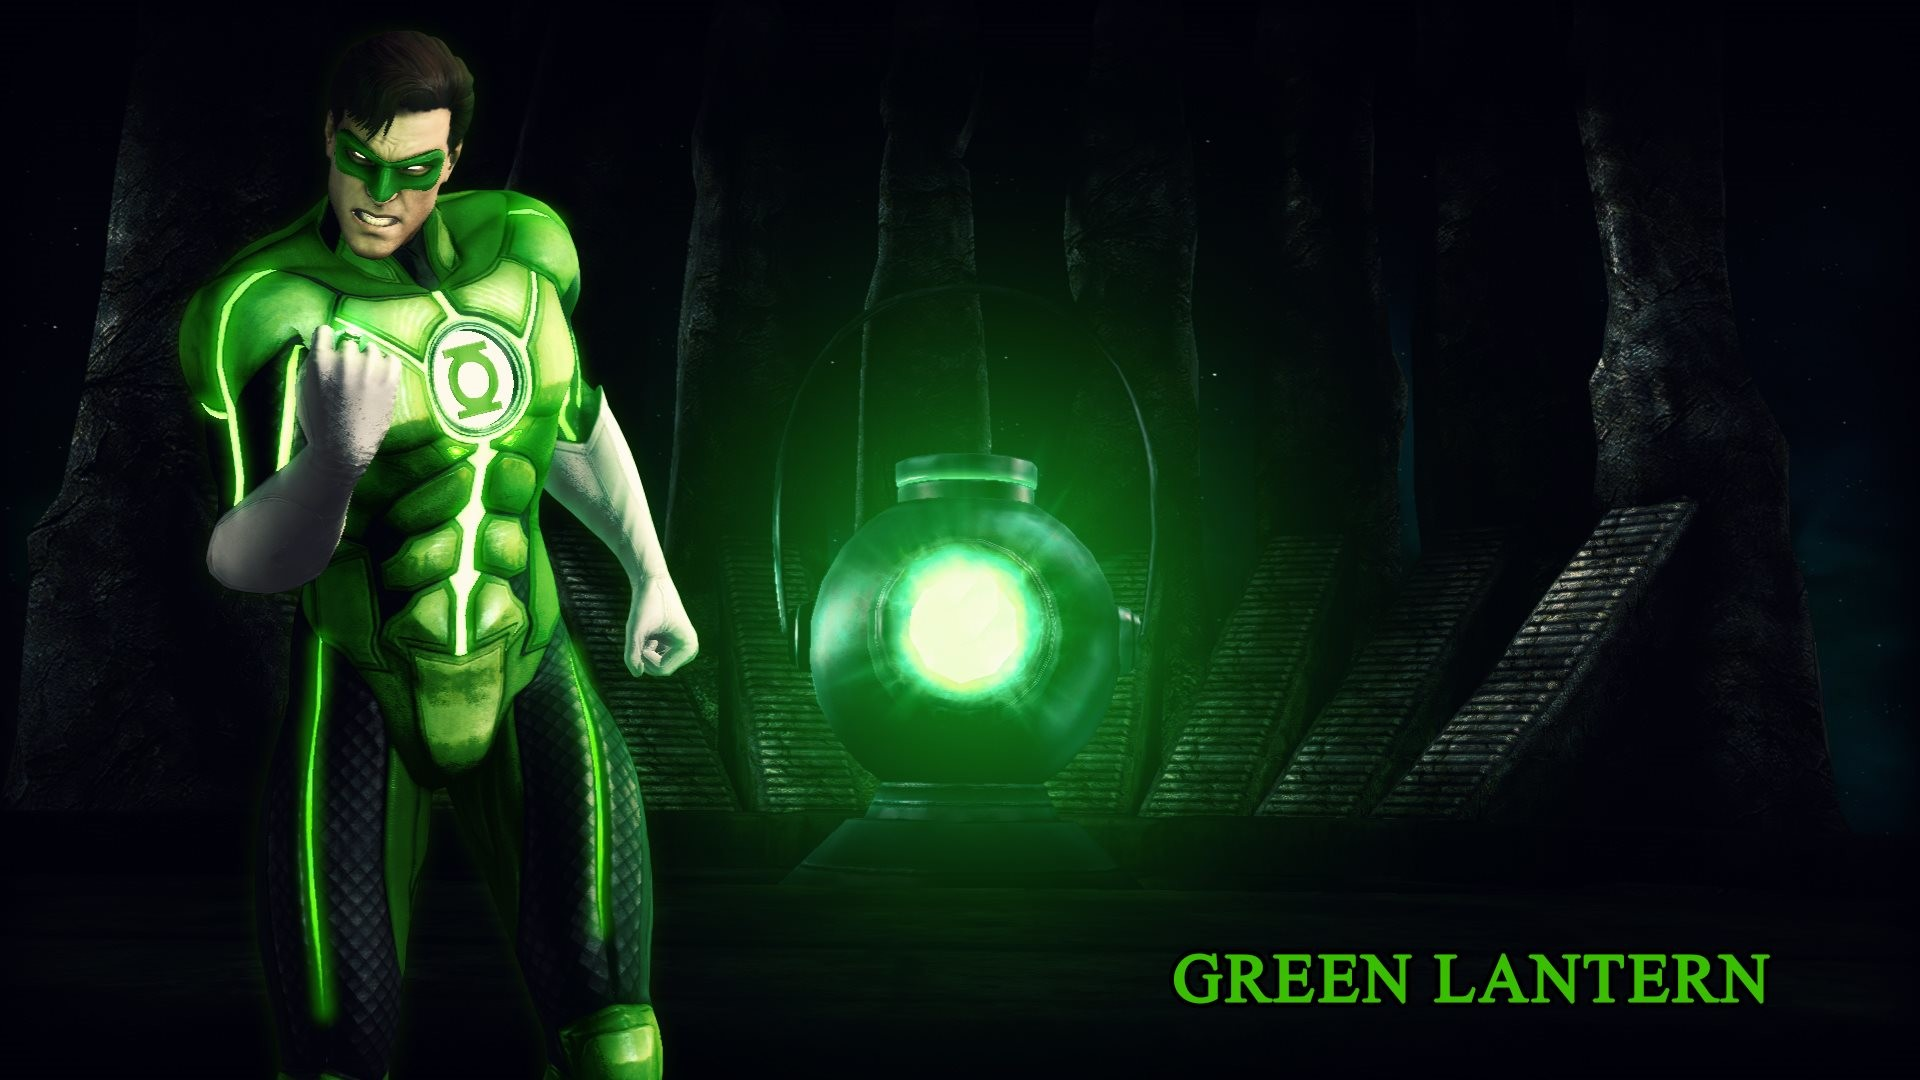 In the 3rd wallpaper is Green Lantern from Injustice – Gods Among Us